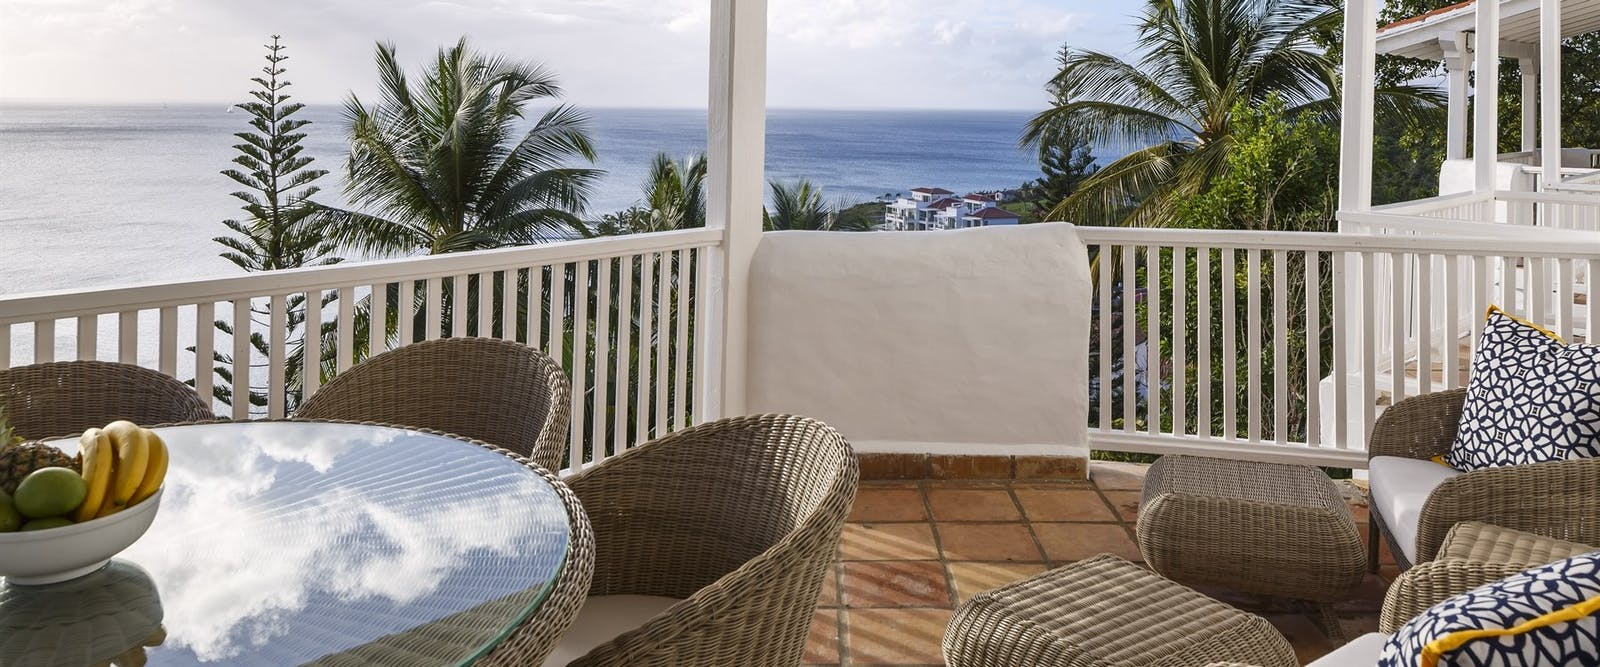 Beach Villa Terrace at Windjammer Landing